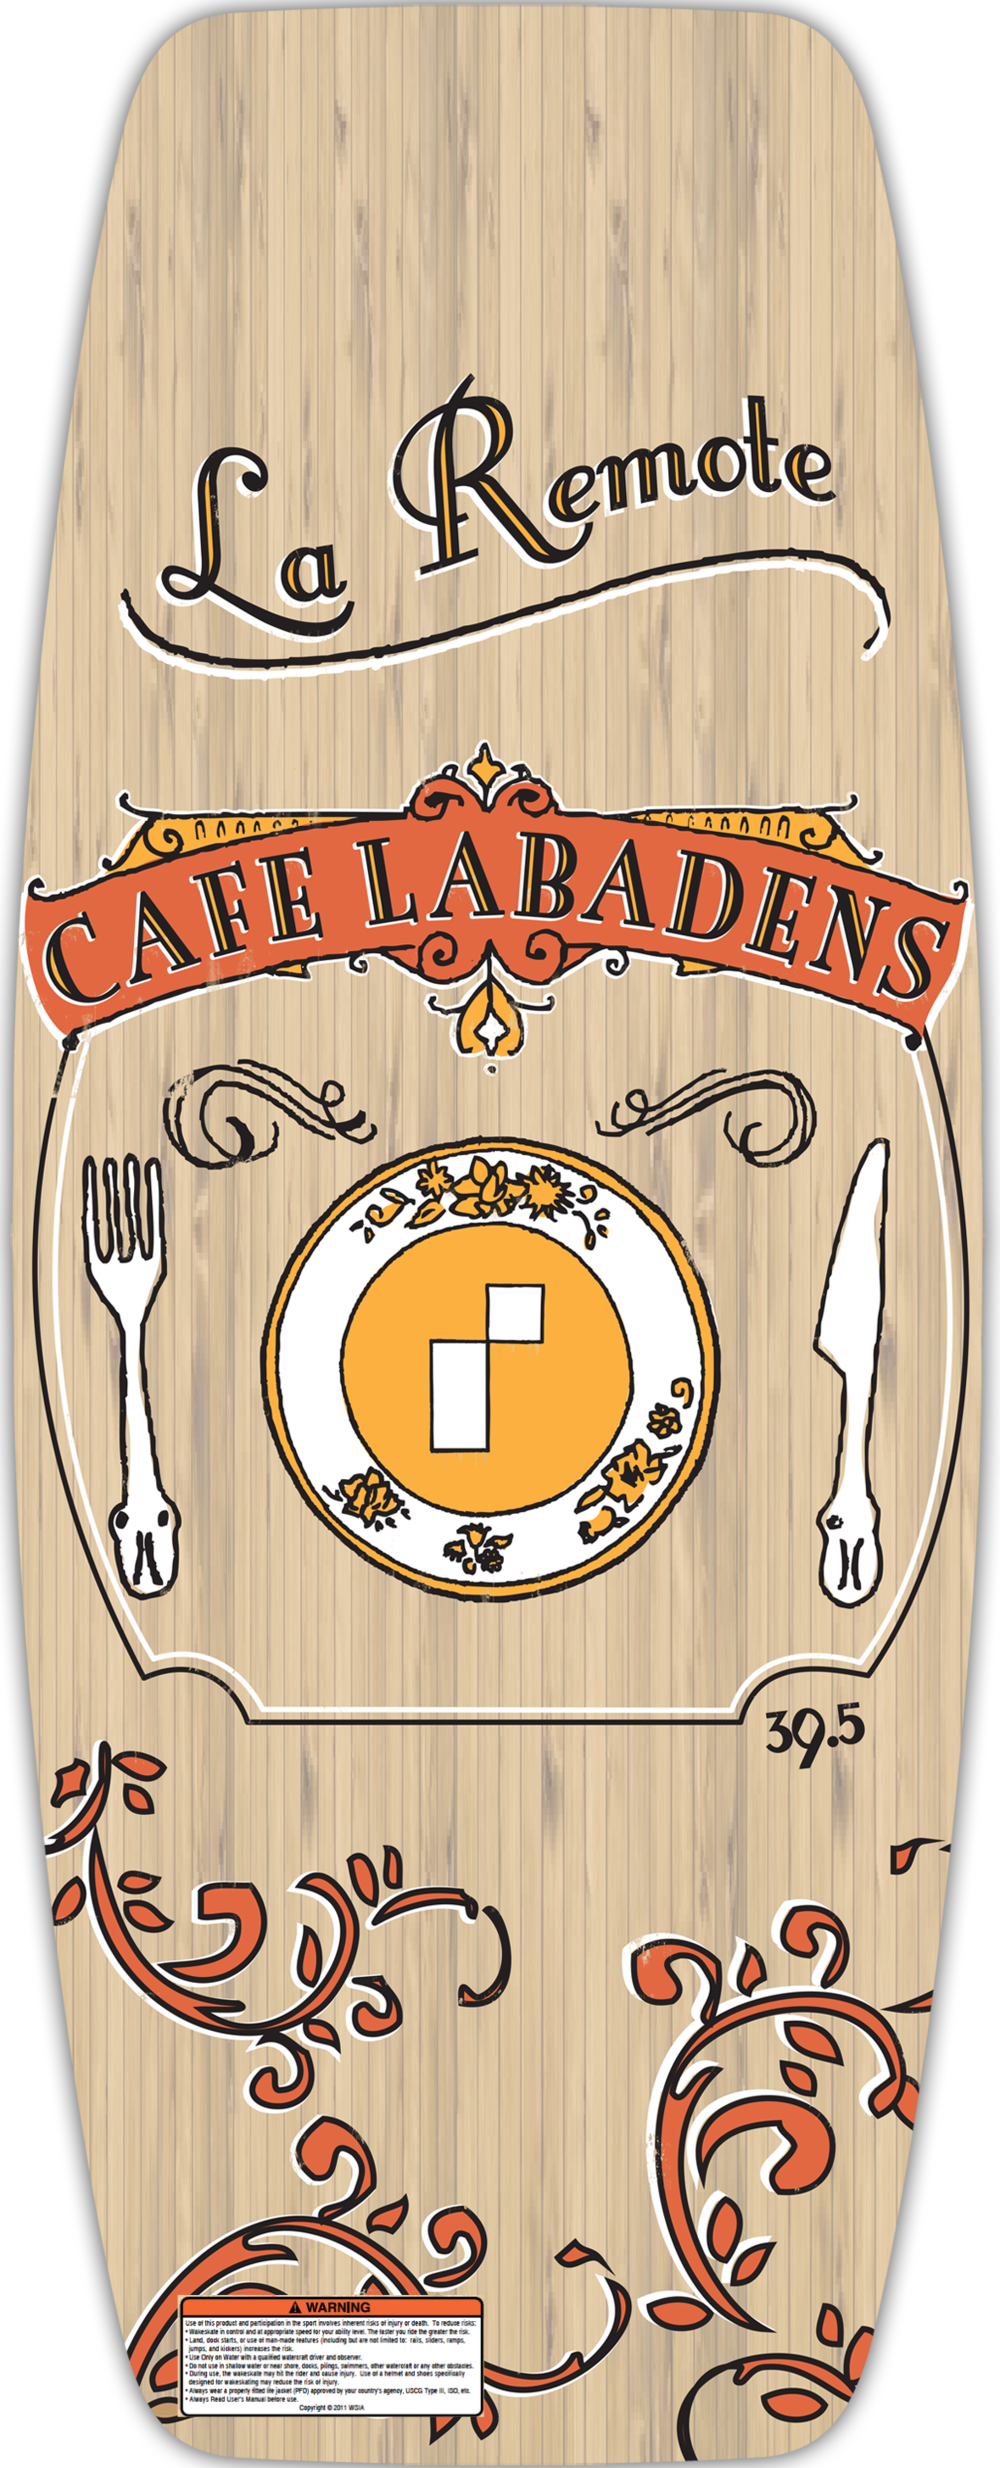 View Cafe Labadens